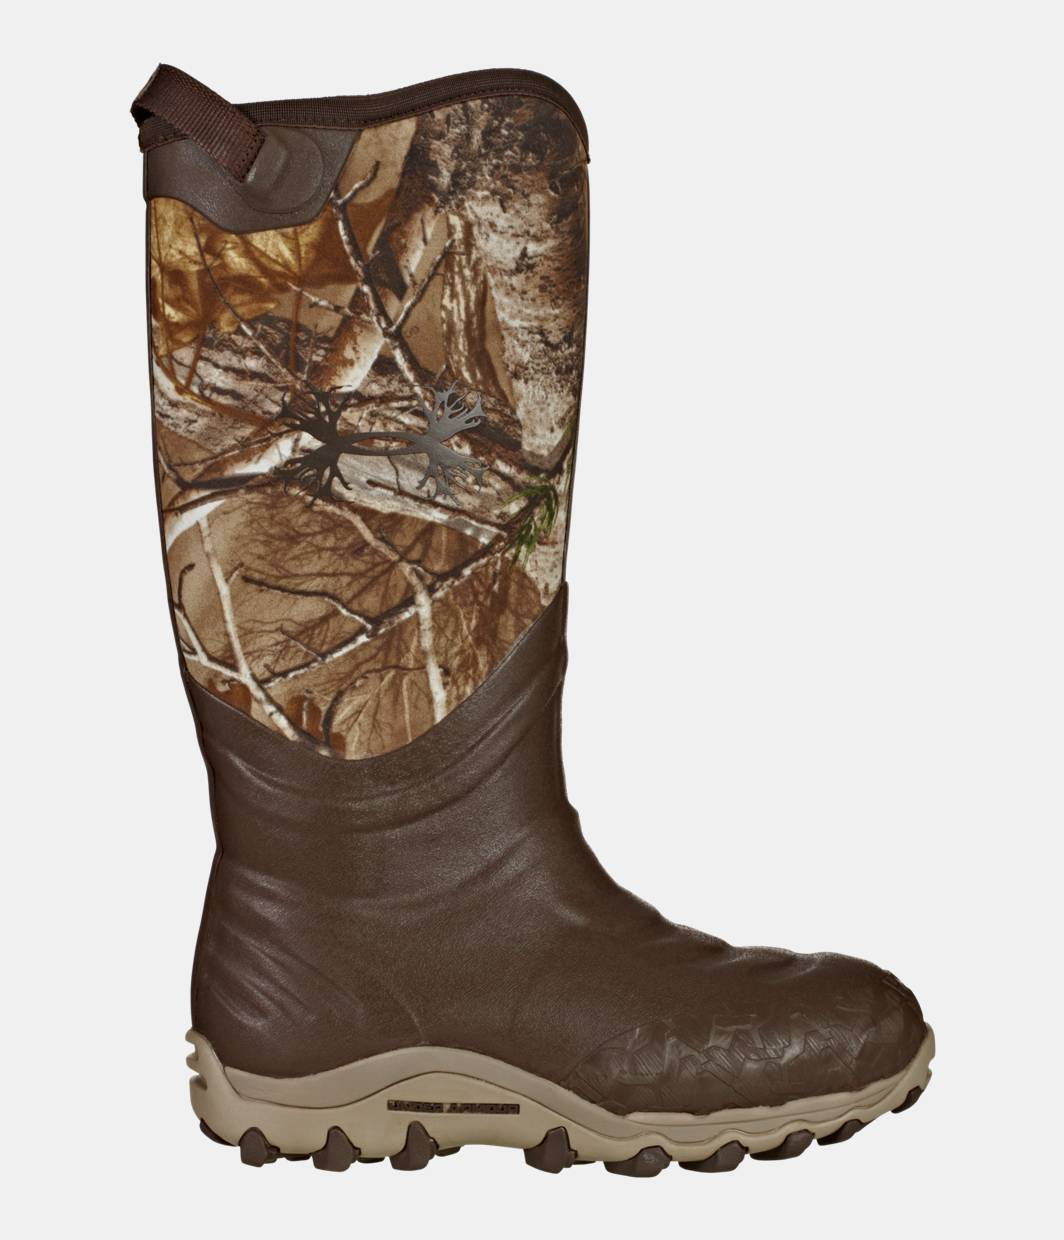 Men's UA H.A.W. 800g Hunting Boots | Under Armour US